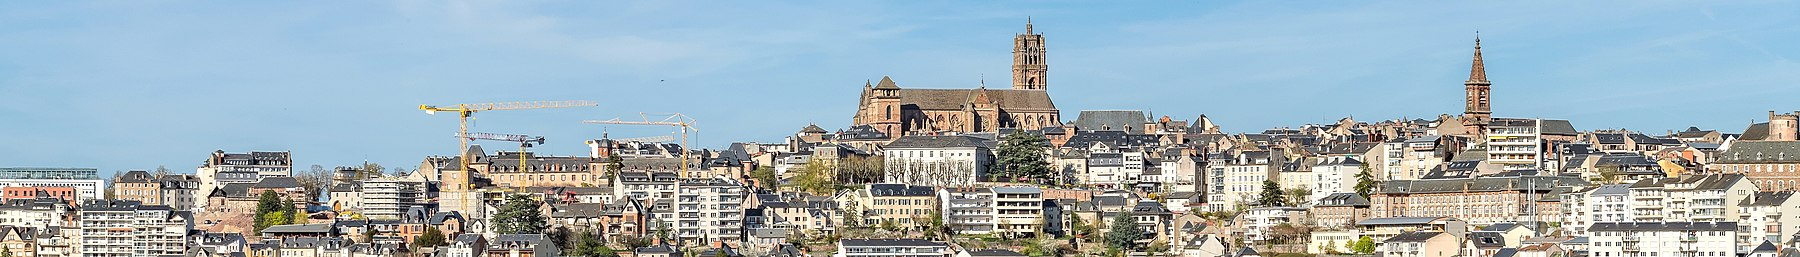 Panoramic view of Rodez 01 (cropped).jpg